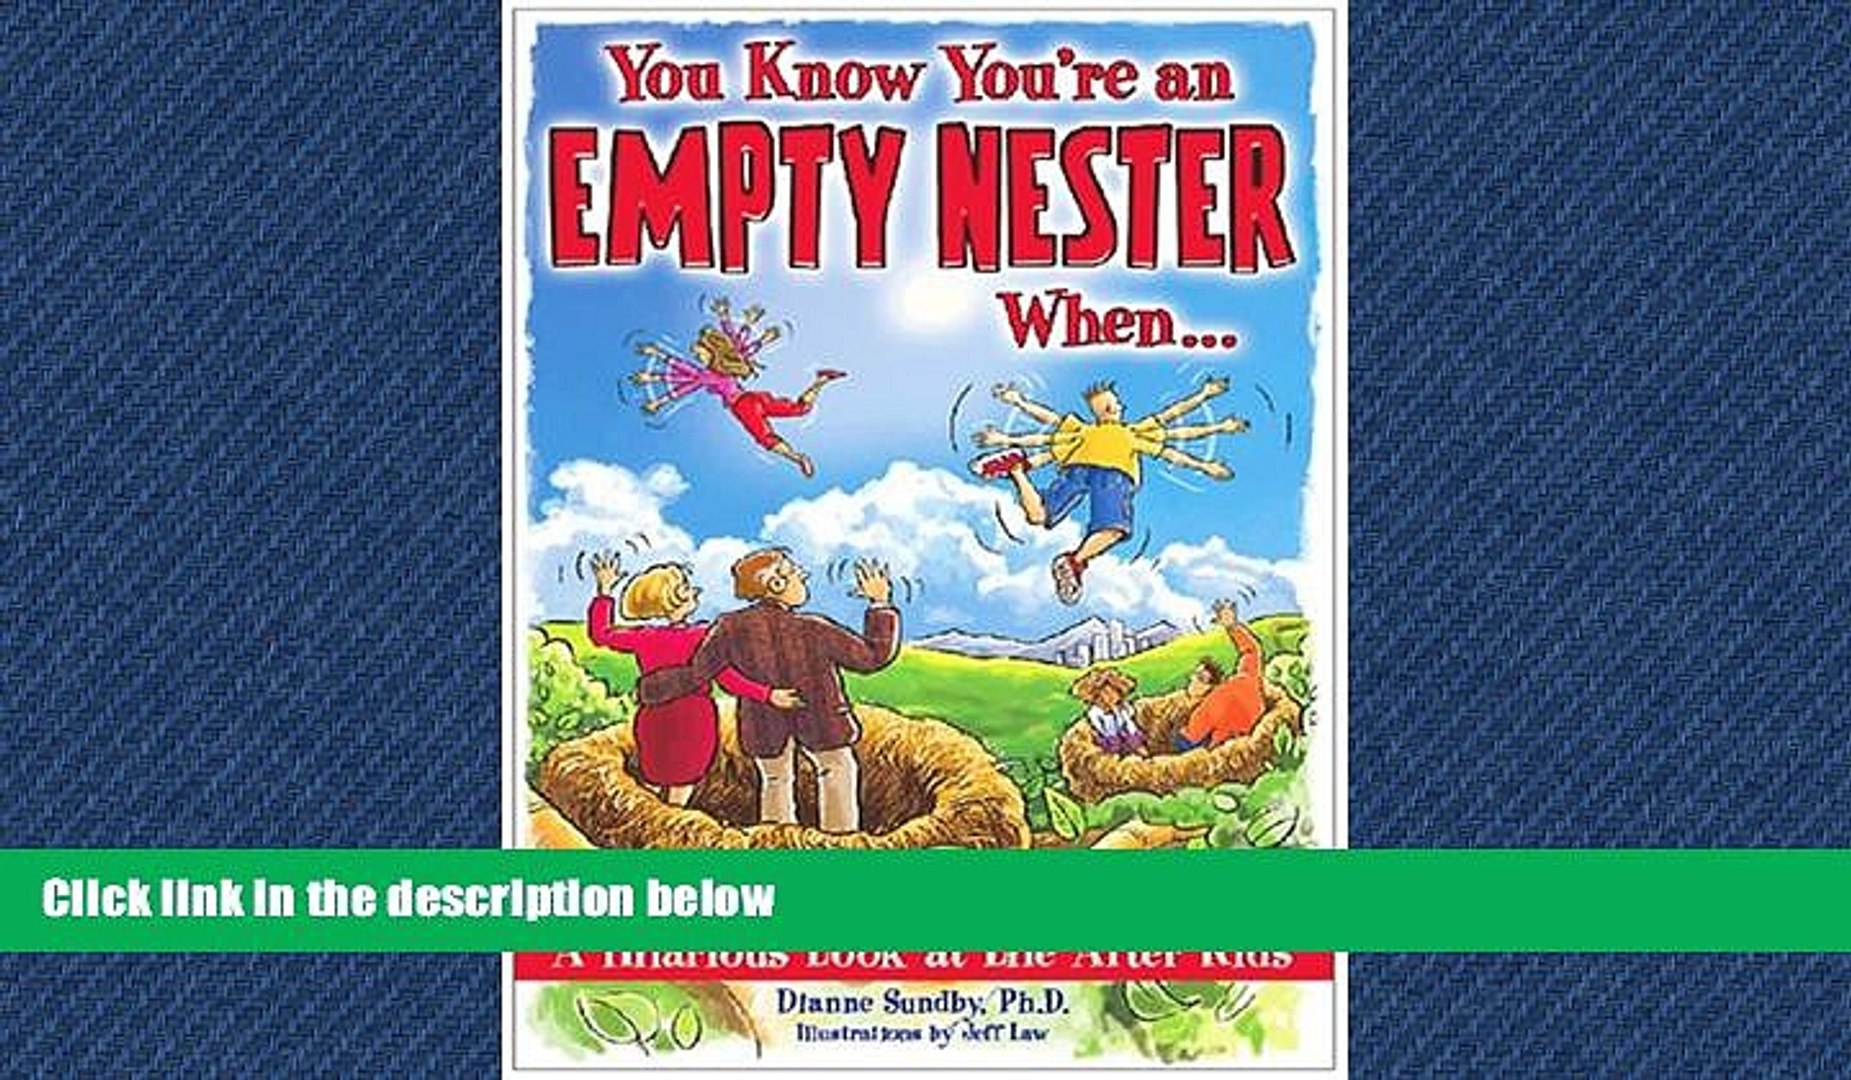 Free [PDF] Downlaod You Know You re an Empty Nester When   : A Hilarious  Look at Life After Kids